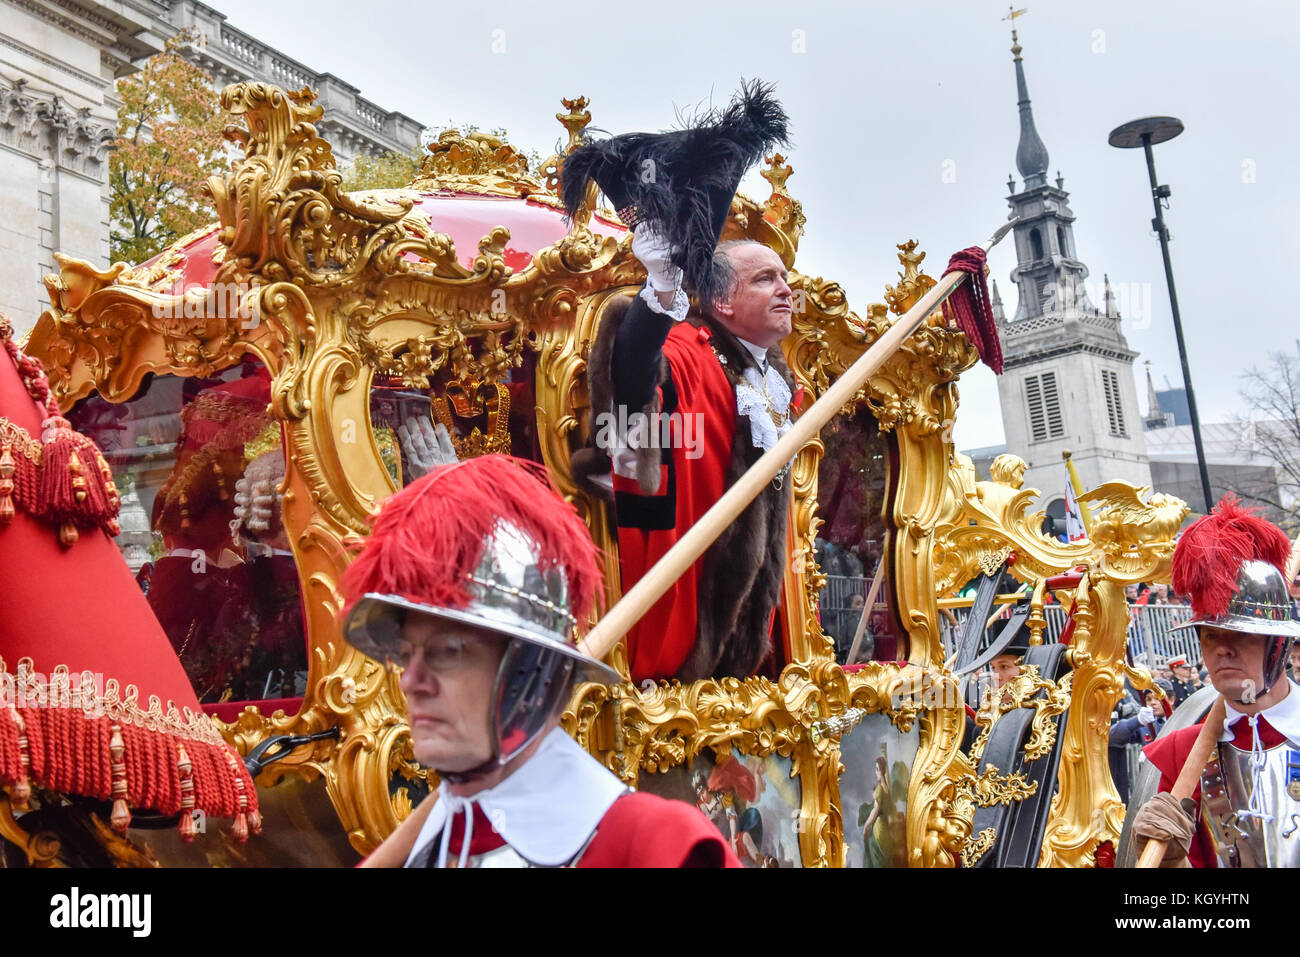 London, UK. 11th Nov, 2017. Charles Bowman, The Lord Mayor, waves from the State Coach outside St. Paul's Cathedral, - Stock Image